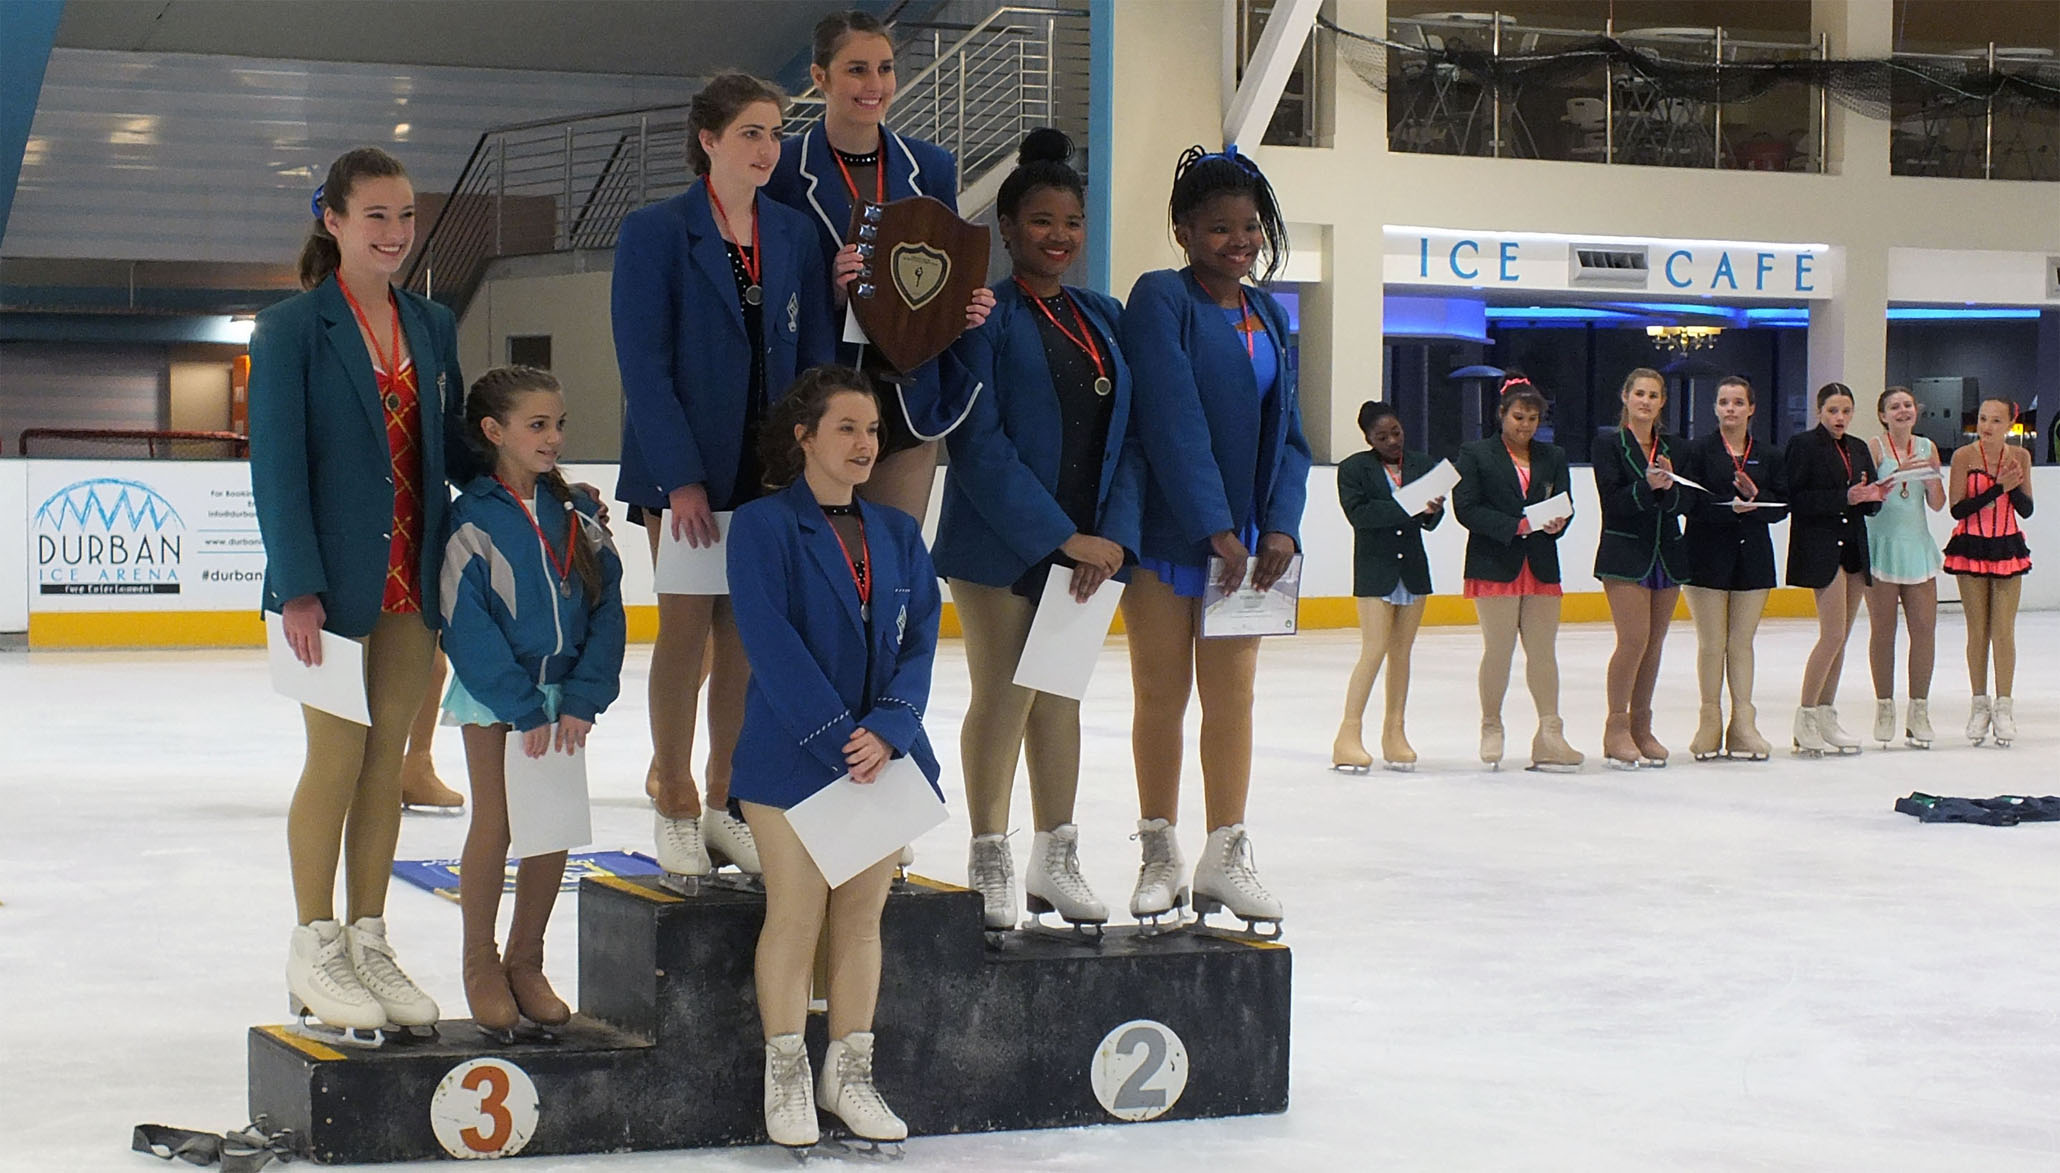 inter-schools-figure- skating-competition-durban-ice-arena